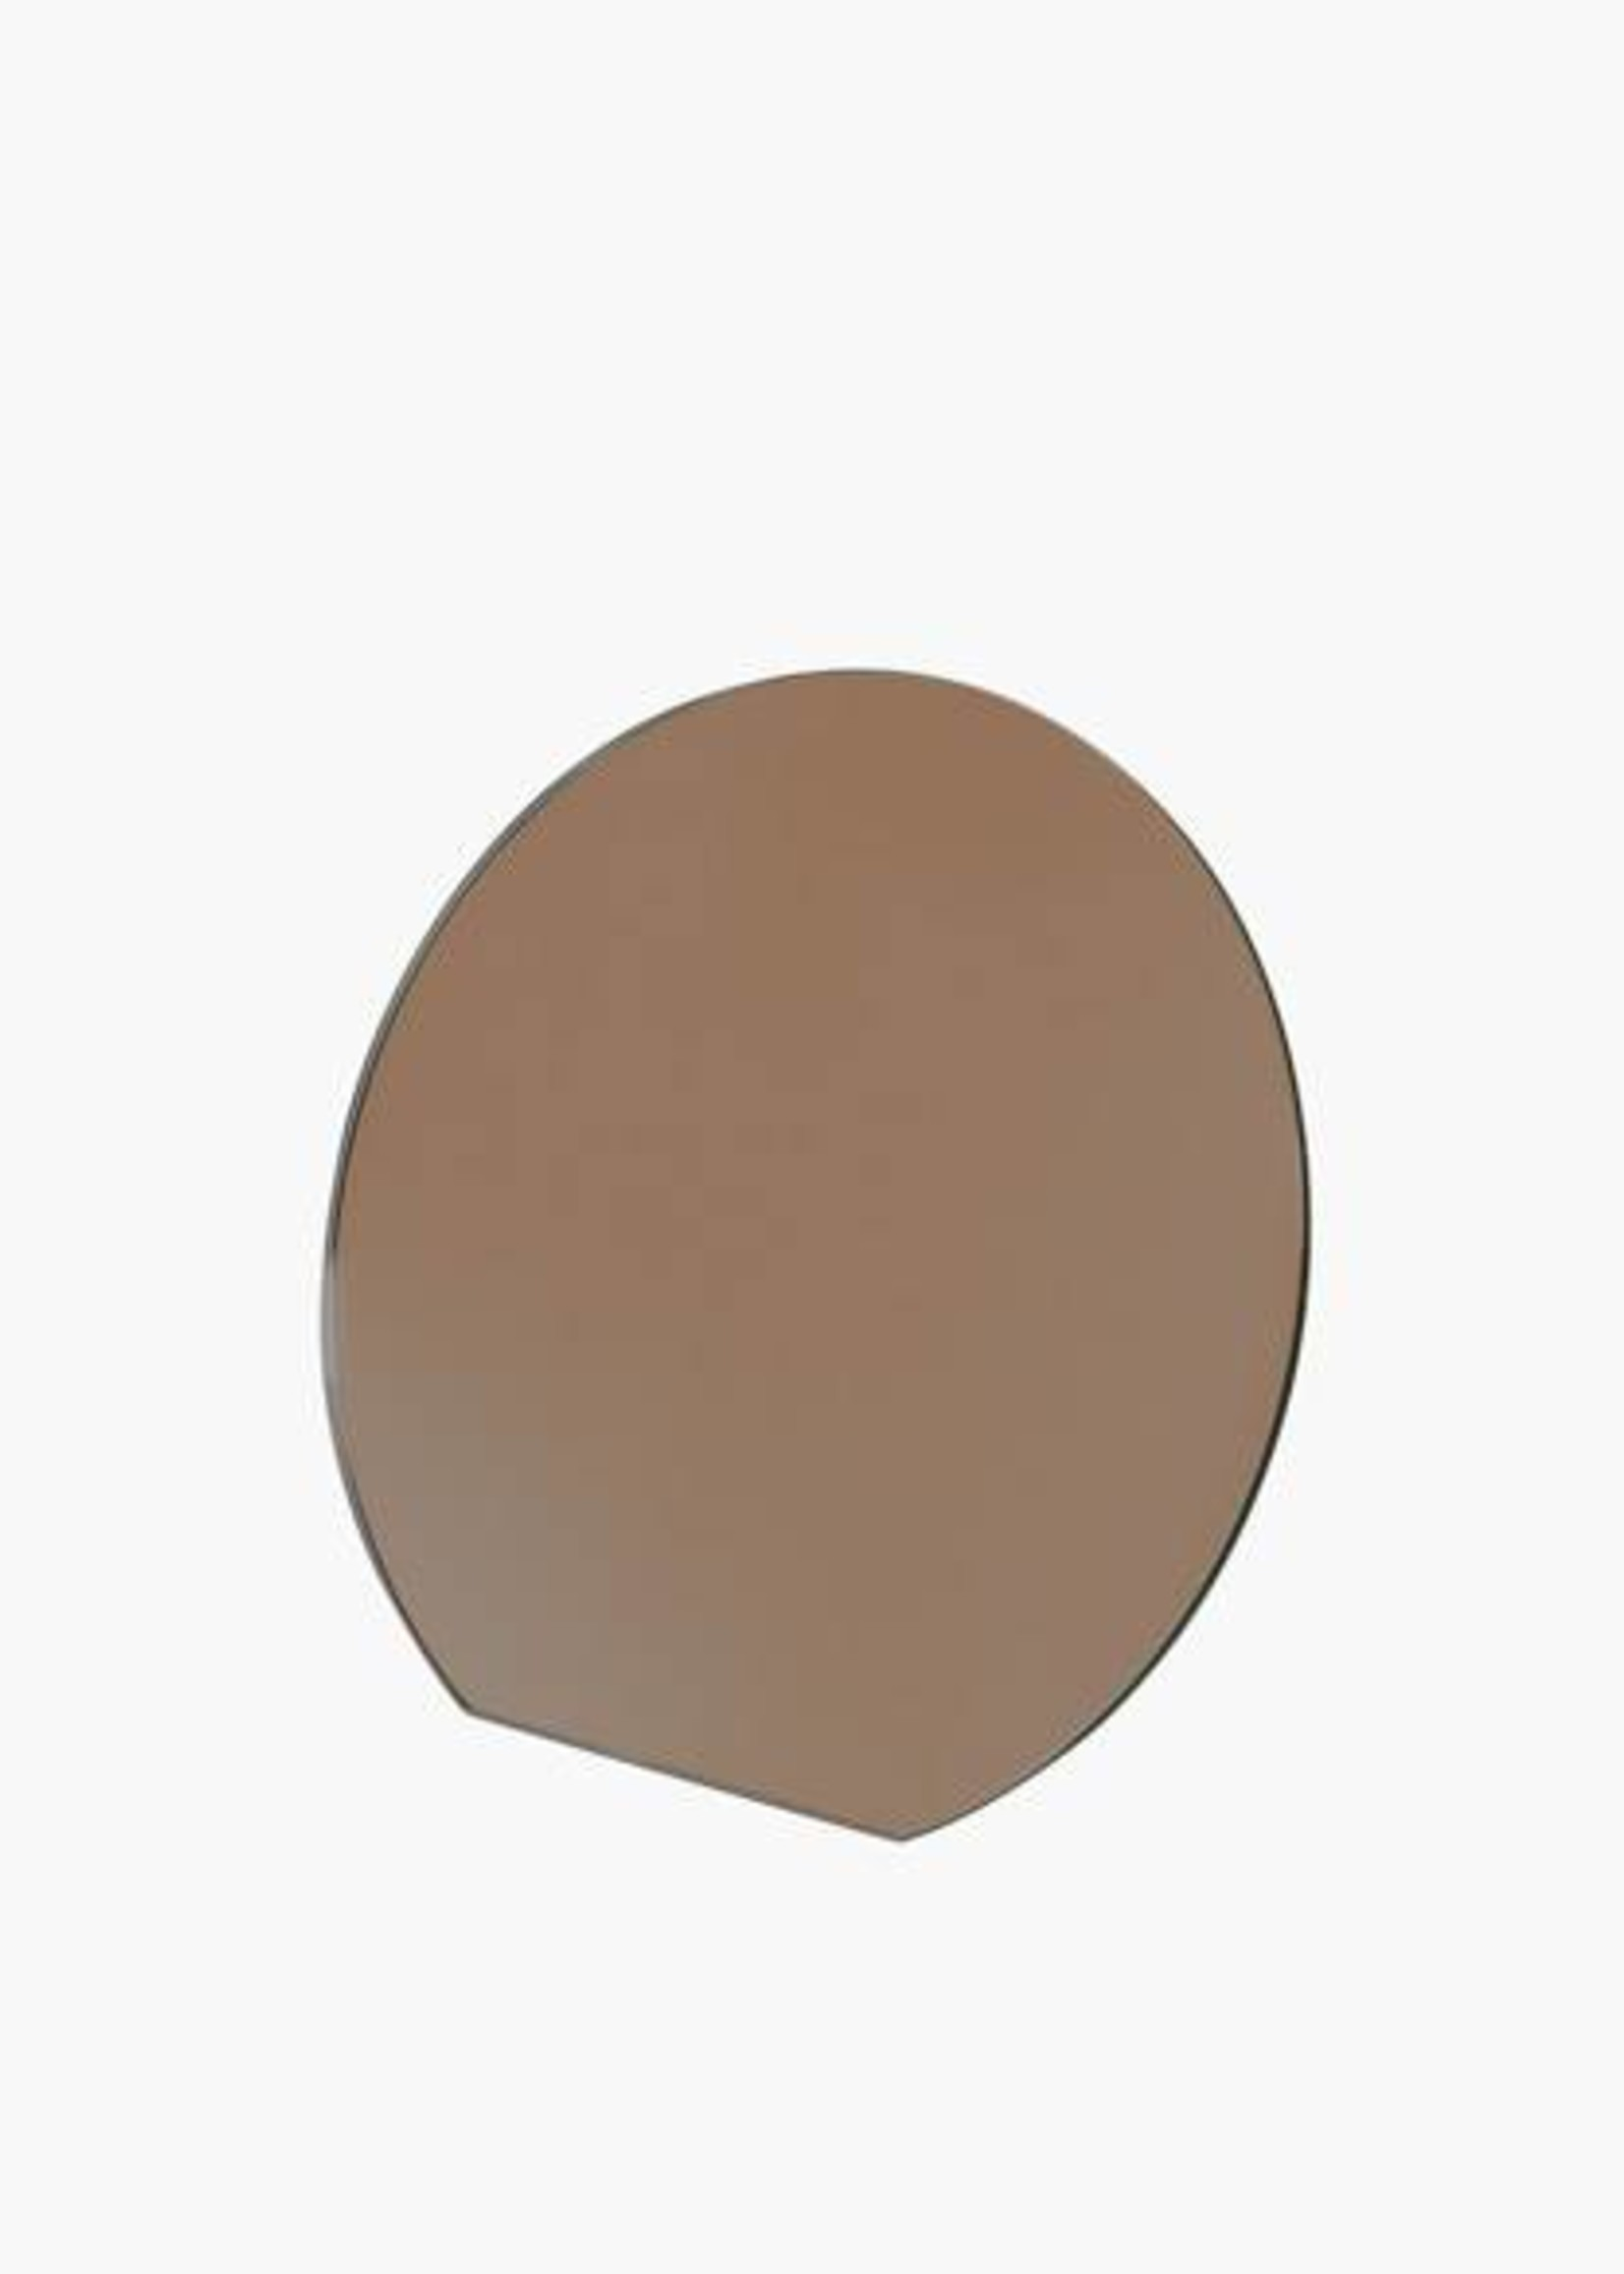 FIGR1 REFLECTOR CIRCLE - COPPER